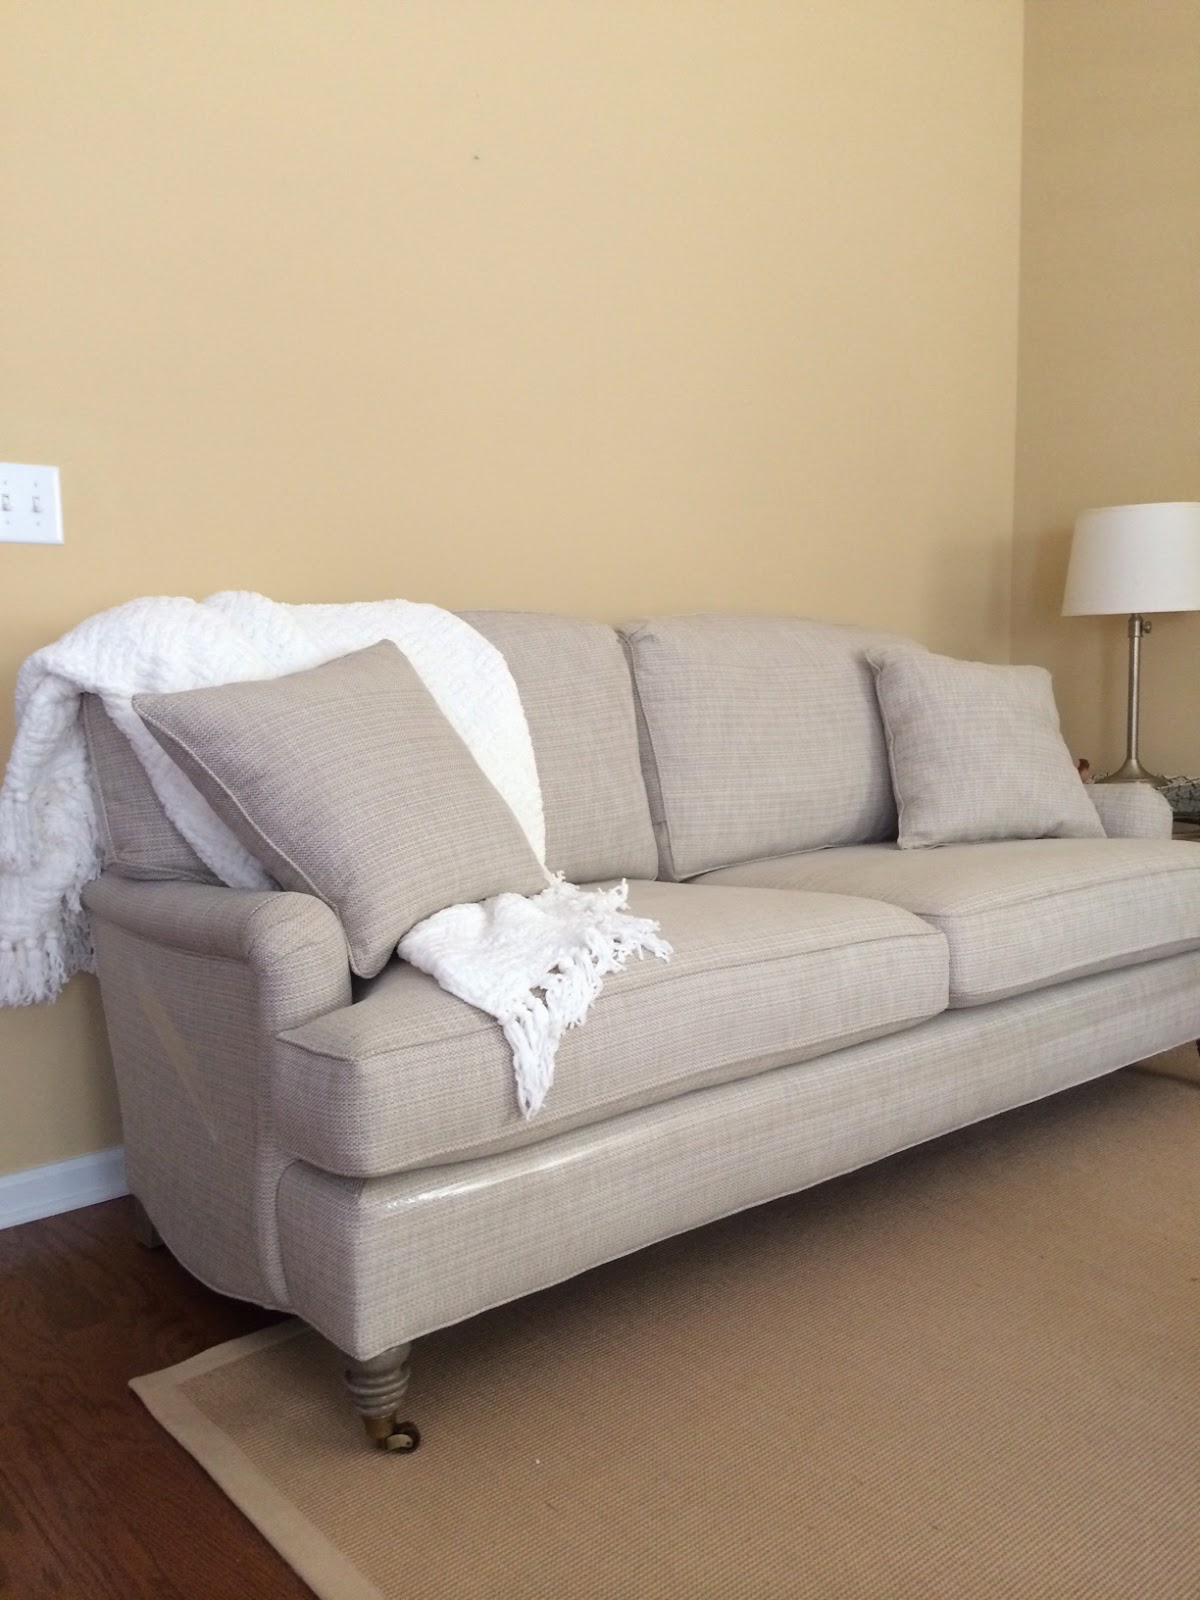 Big Sofa Island Greige Our Home Update Photos New Furniture The Great Paint Debate